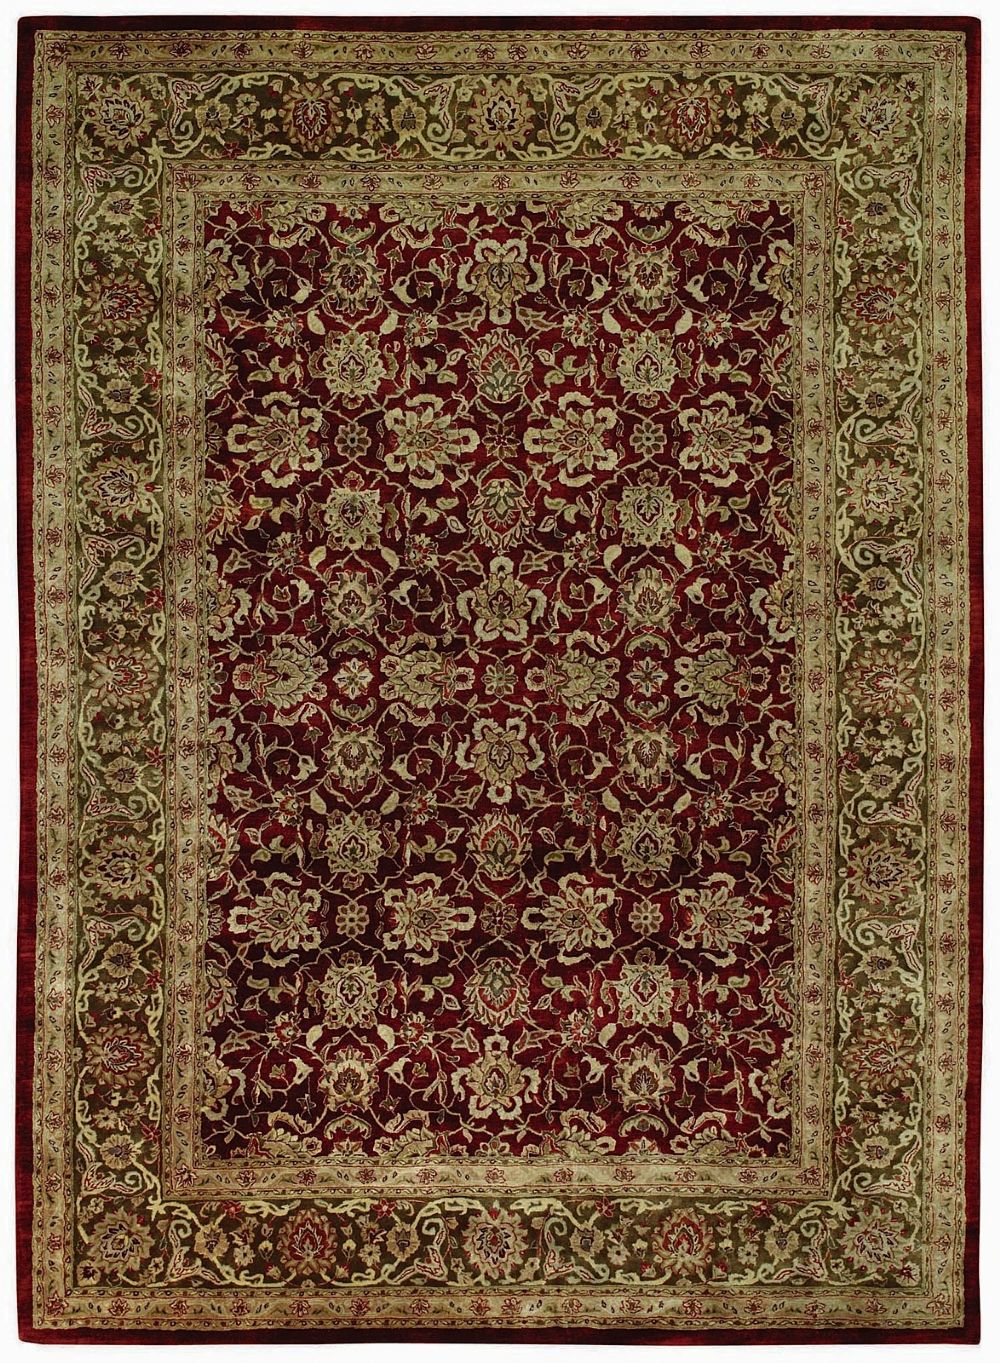 capel forest park-meshed traditional area rug collection